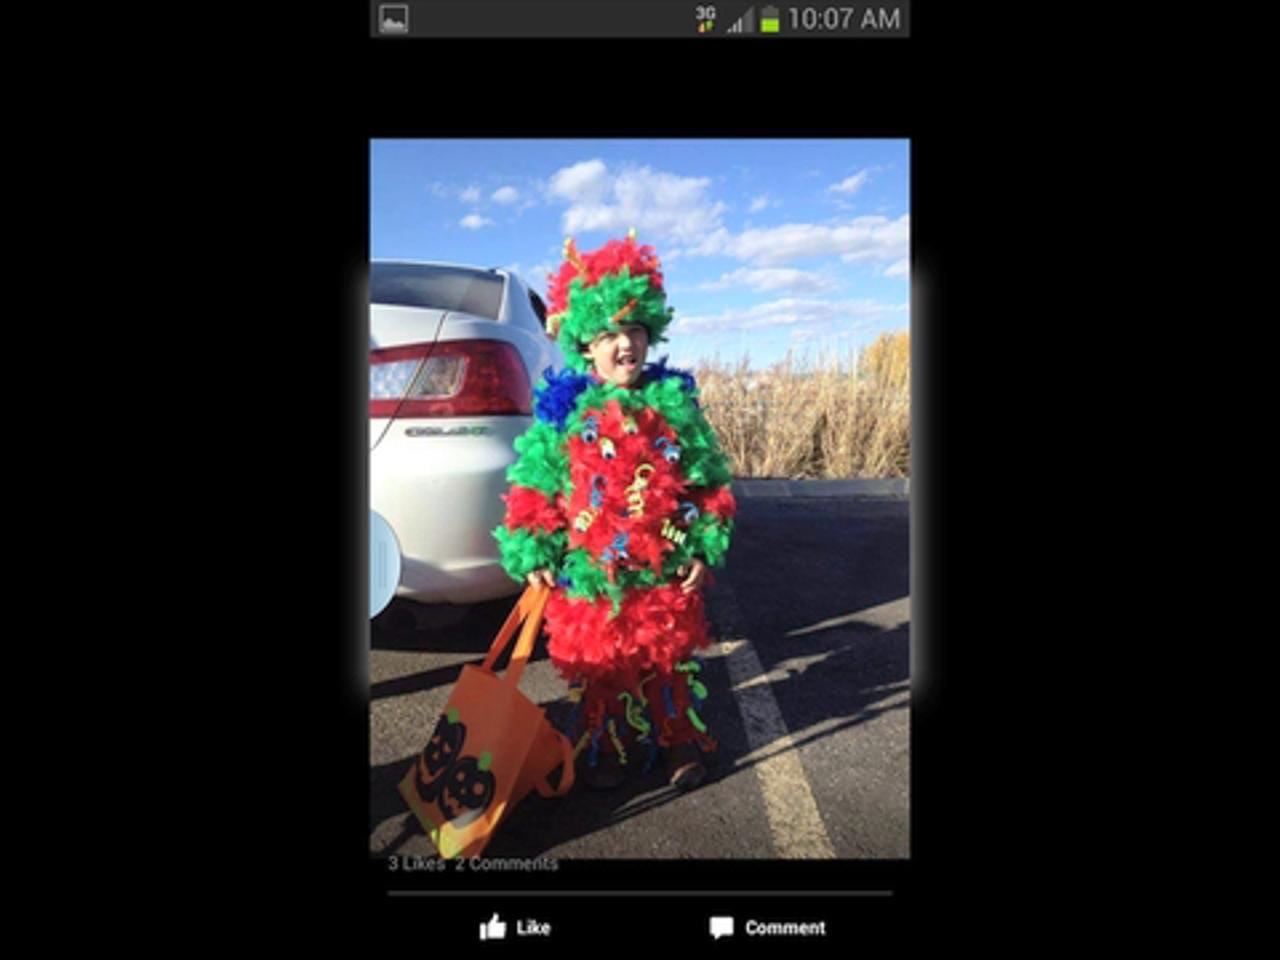 Modern Moms, Lisa Larson and Samantha Sadlier, discuss Halloween costumes and share photos of children in costumes submitted by readers.